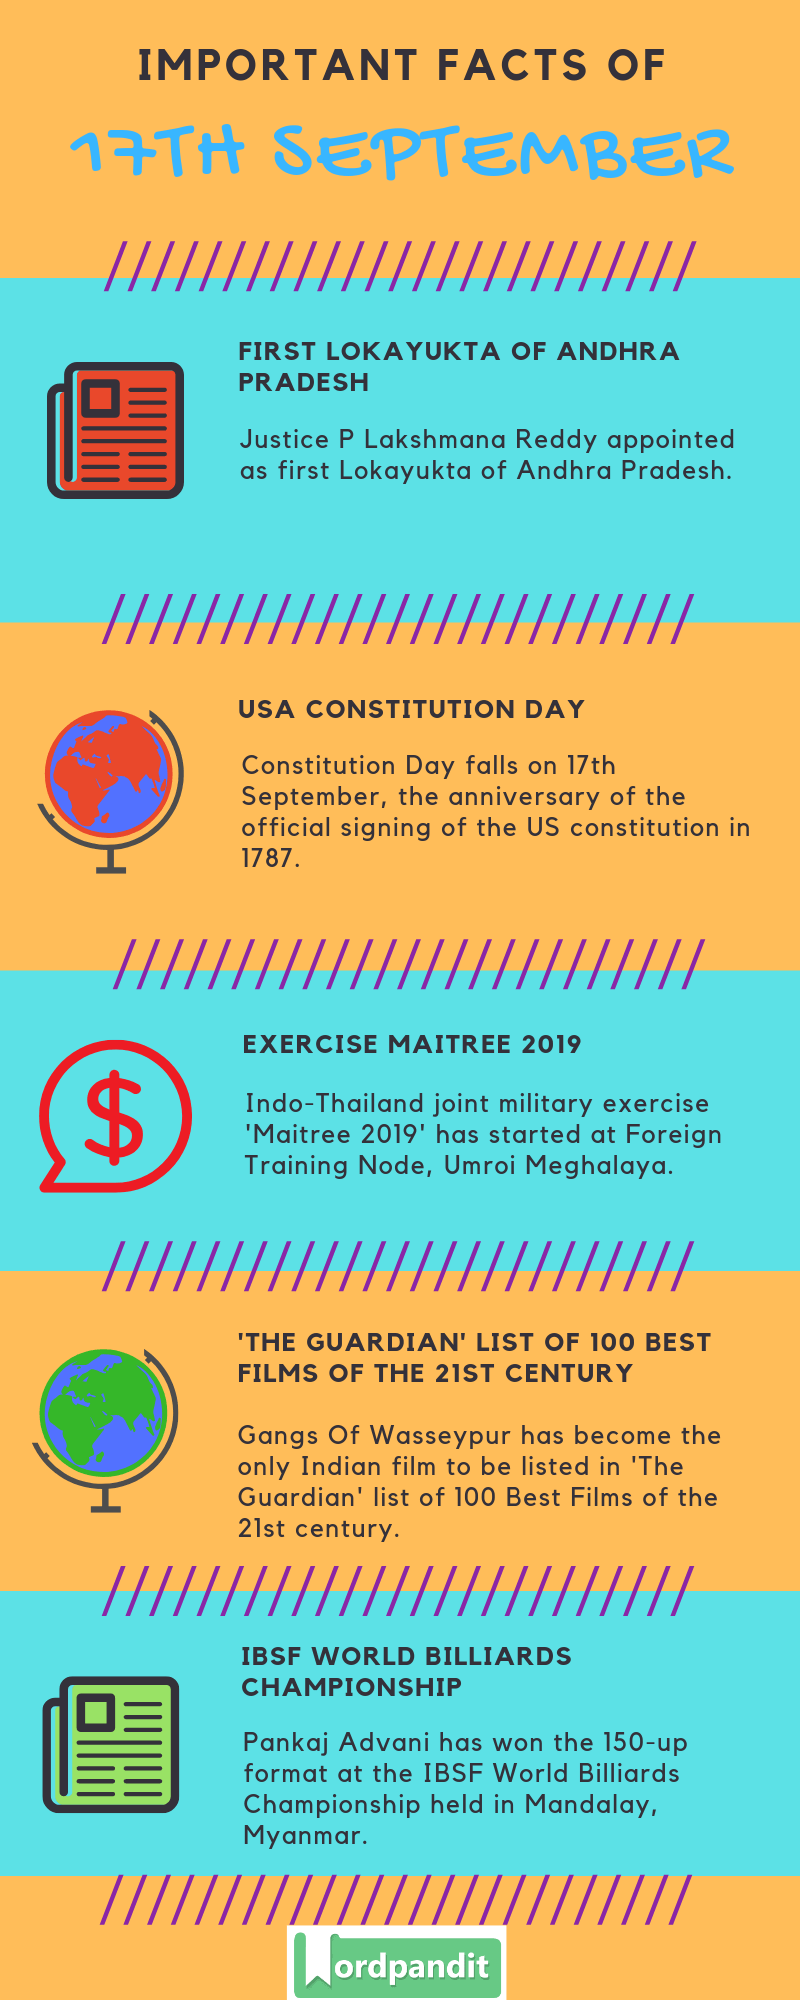 Daily Current Affairs 17 September 2019 Current Affairs Quiz 17 September 2019 Current Affairs Infographic